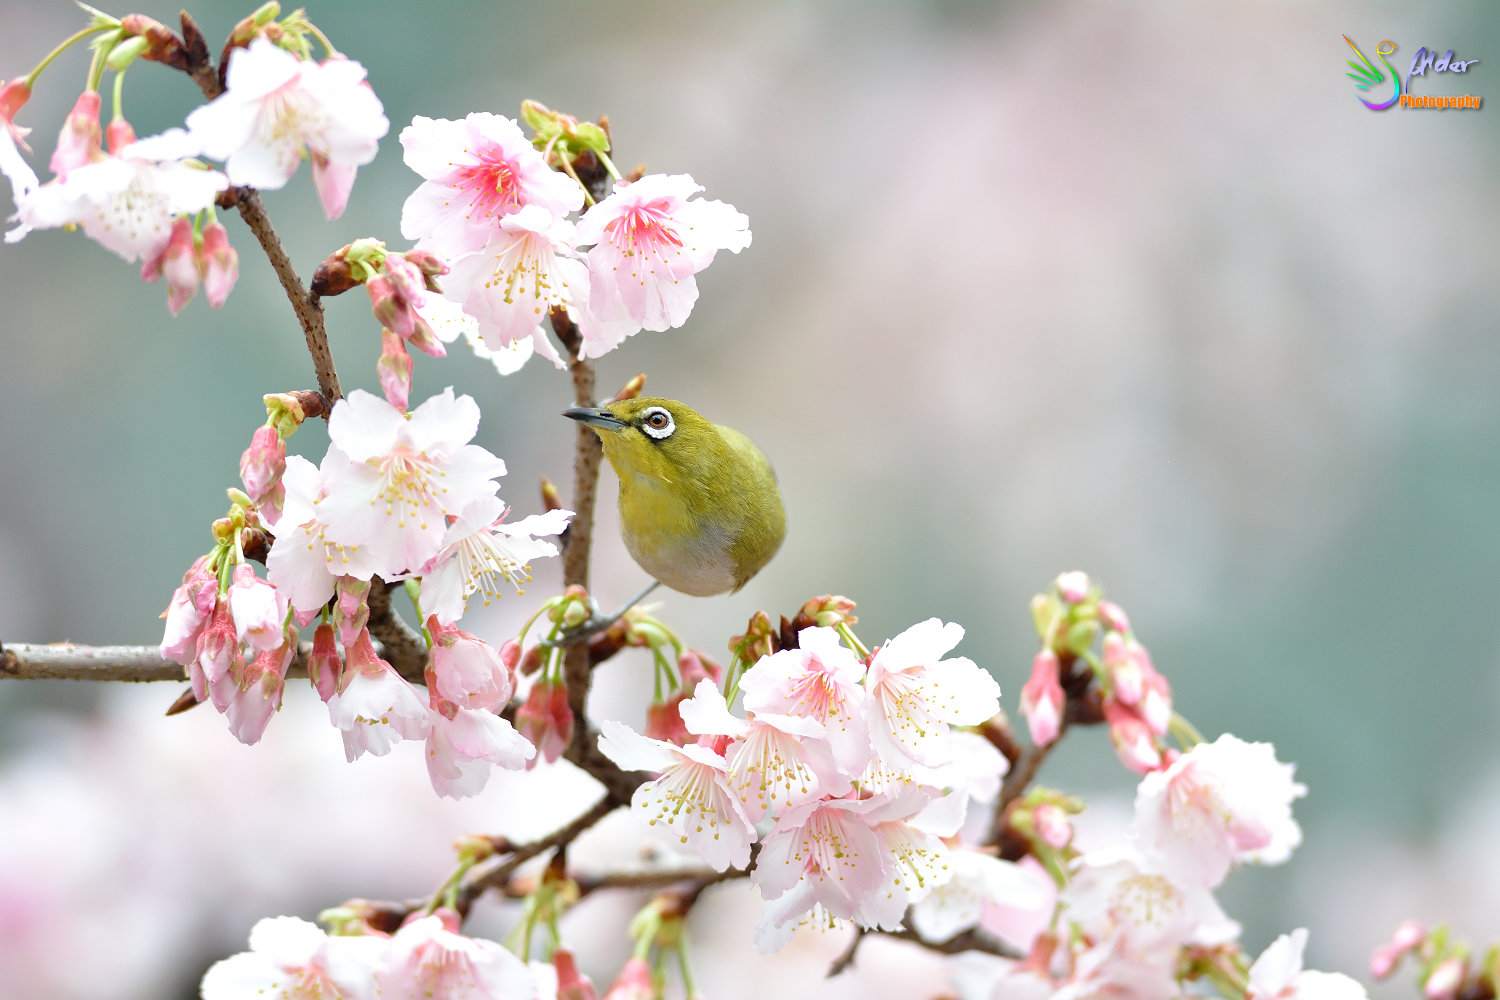 Sakura_White-eye_6893